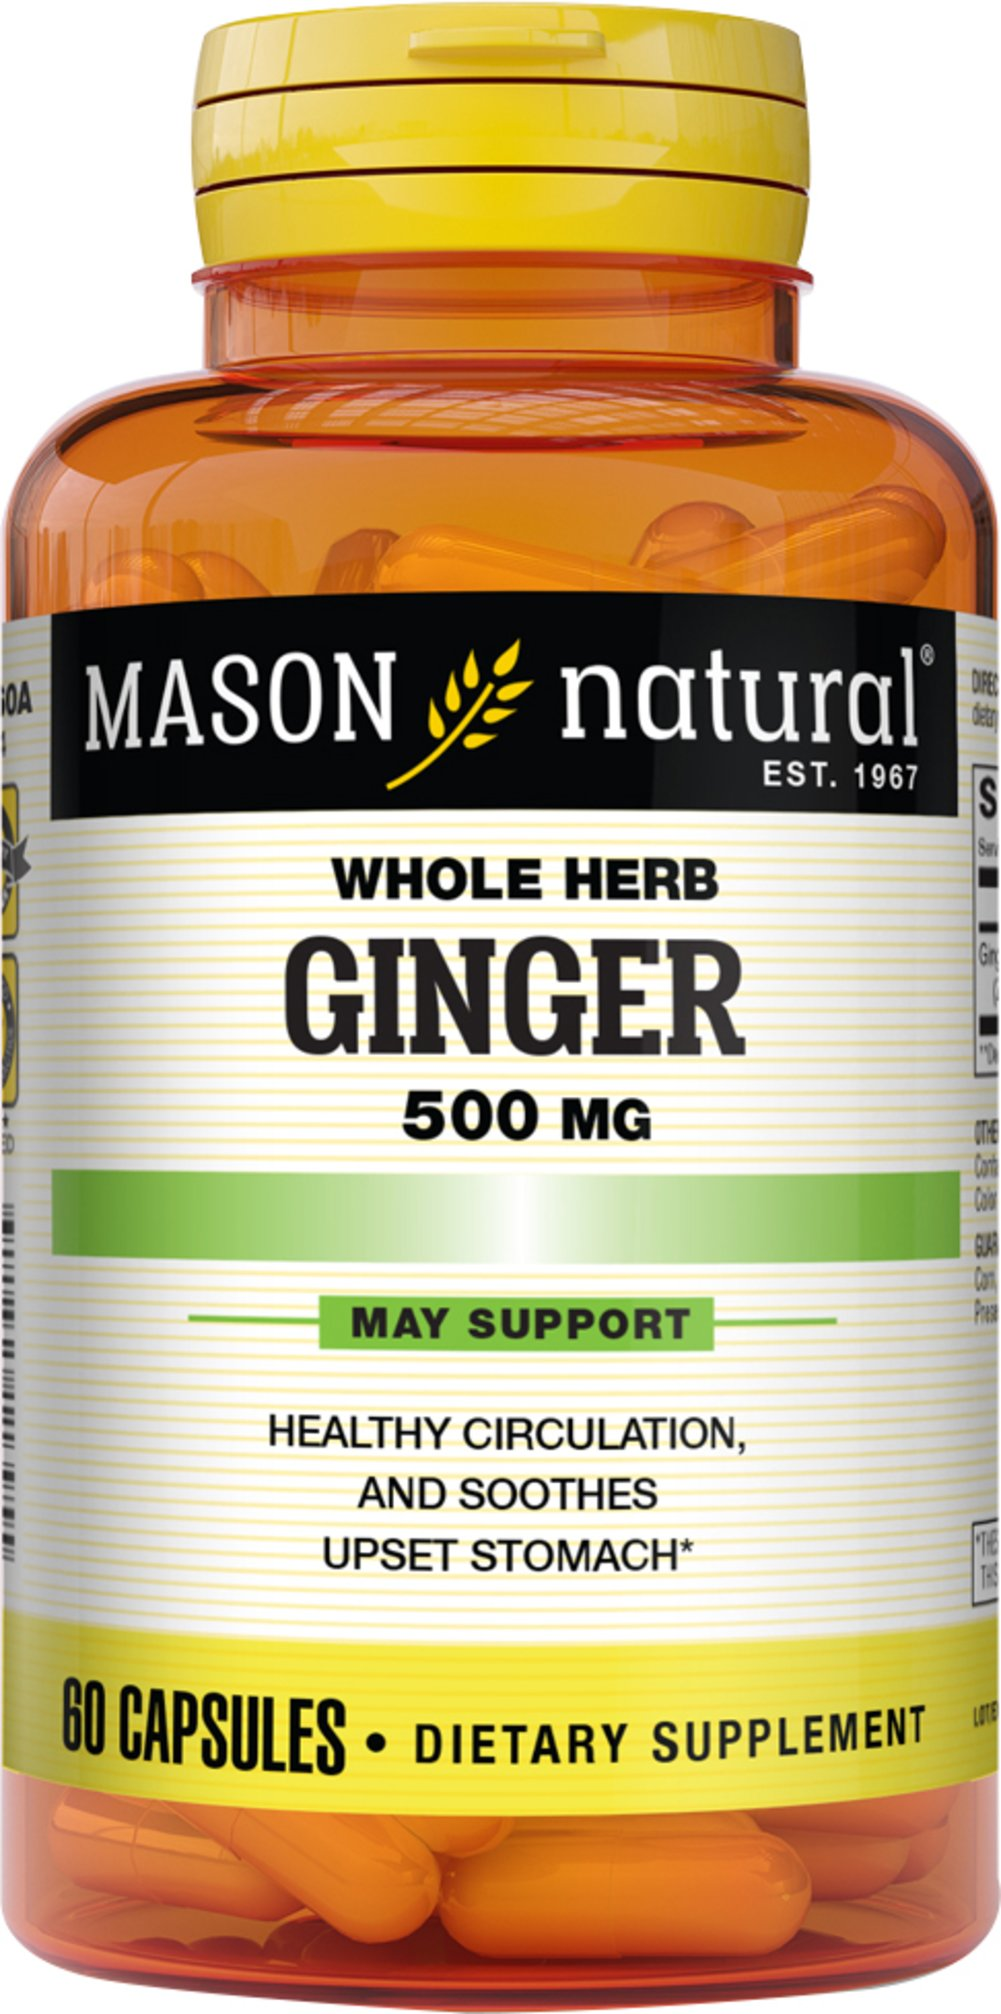 Ginger 500 mg <p><strong>From the Manufacturer's label:</strong></p><ul><li>Herbal Supplement</li><li>Promotes Healthy Circulation**</li><li>Soothes upset stomach & is Popular with Travelers**</li></ul><p>Manufactured for Mason Vitamins, Inc.</p><p></p><p></p><p><strong></strong></p><p></p> 60 Capsules 500 mg $3.99